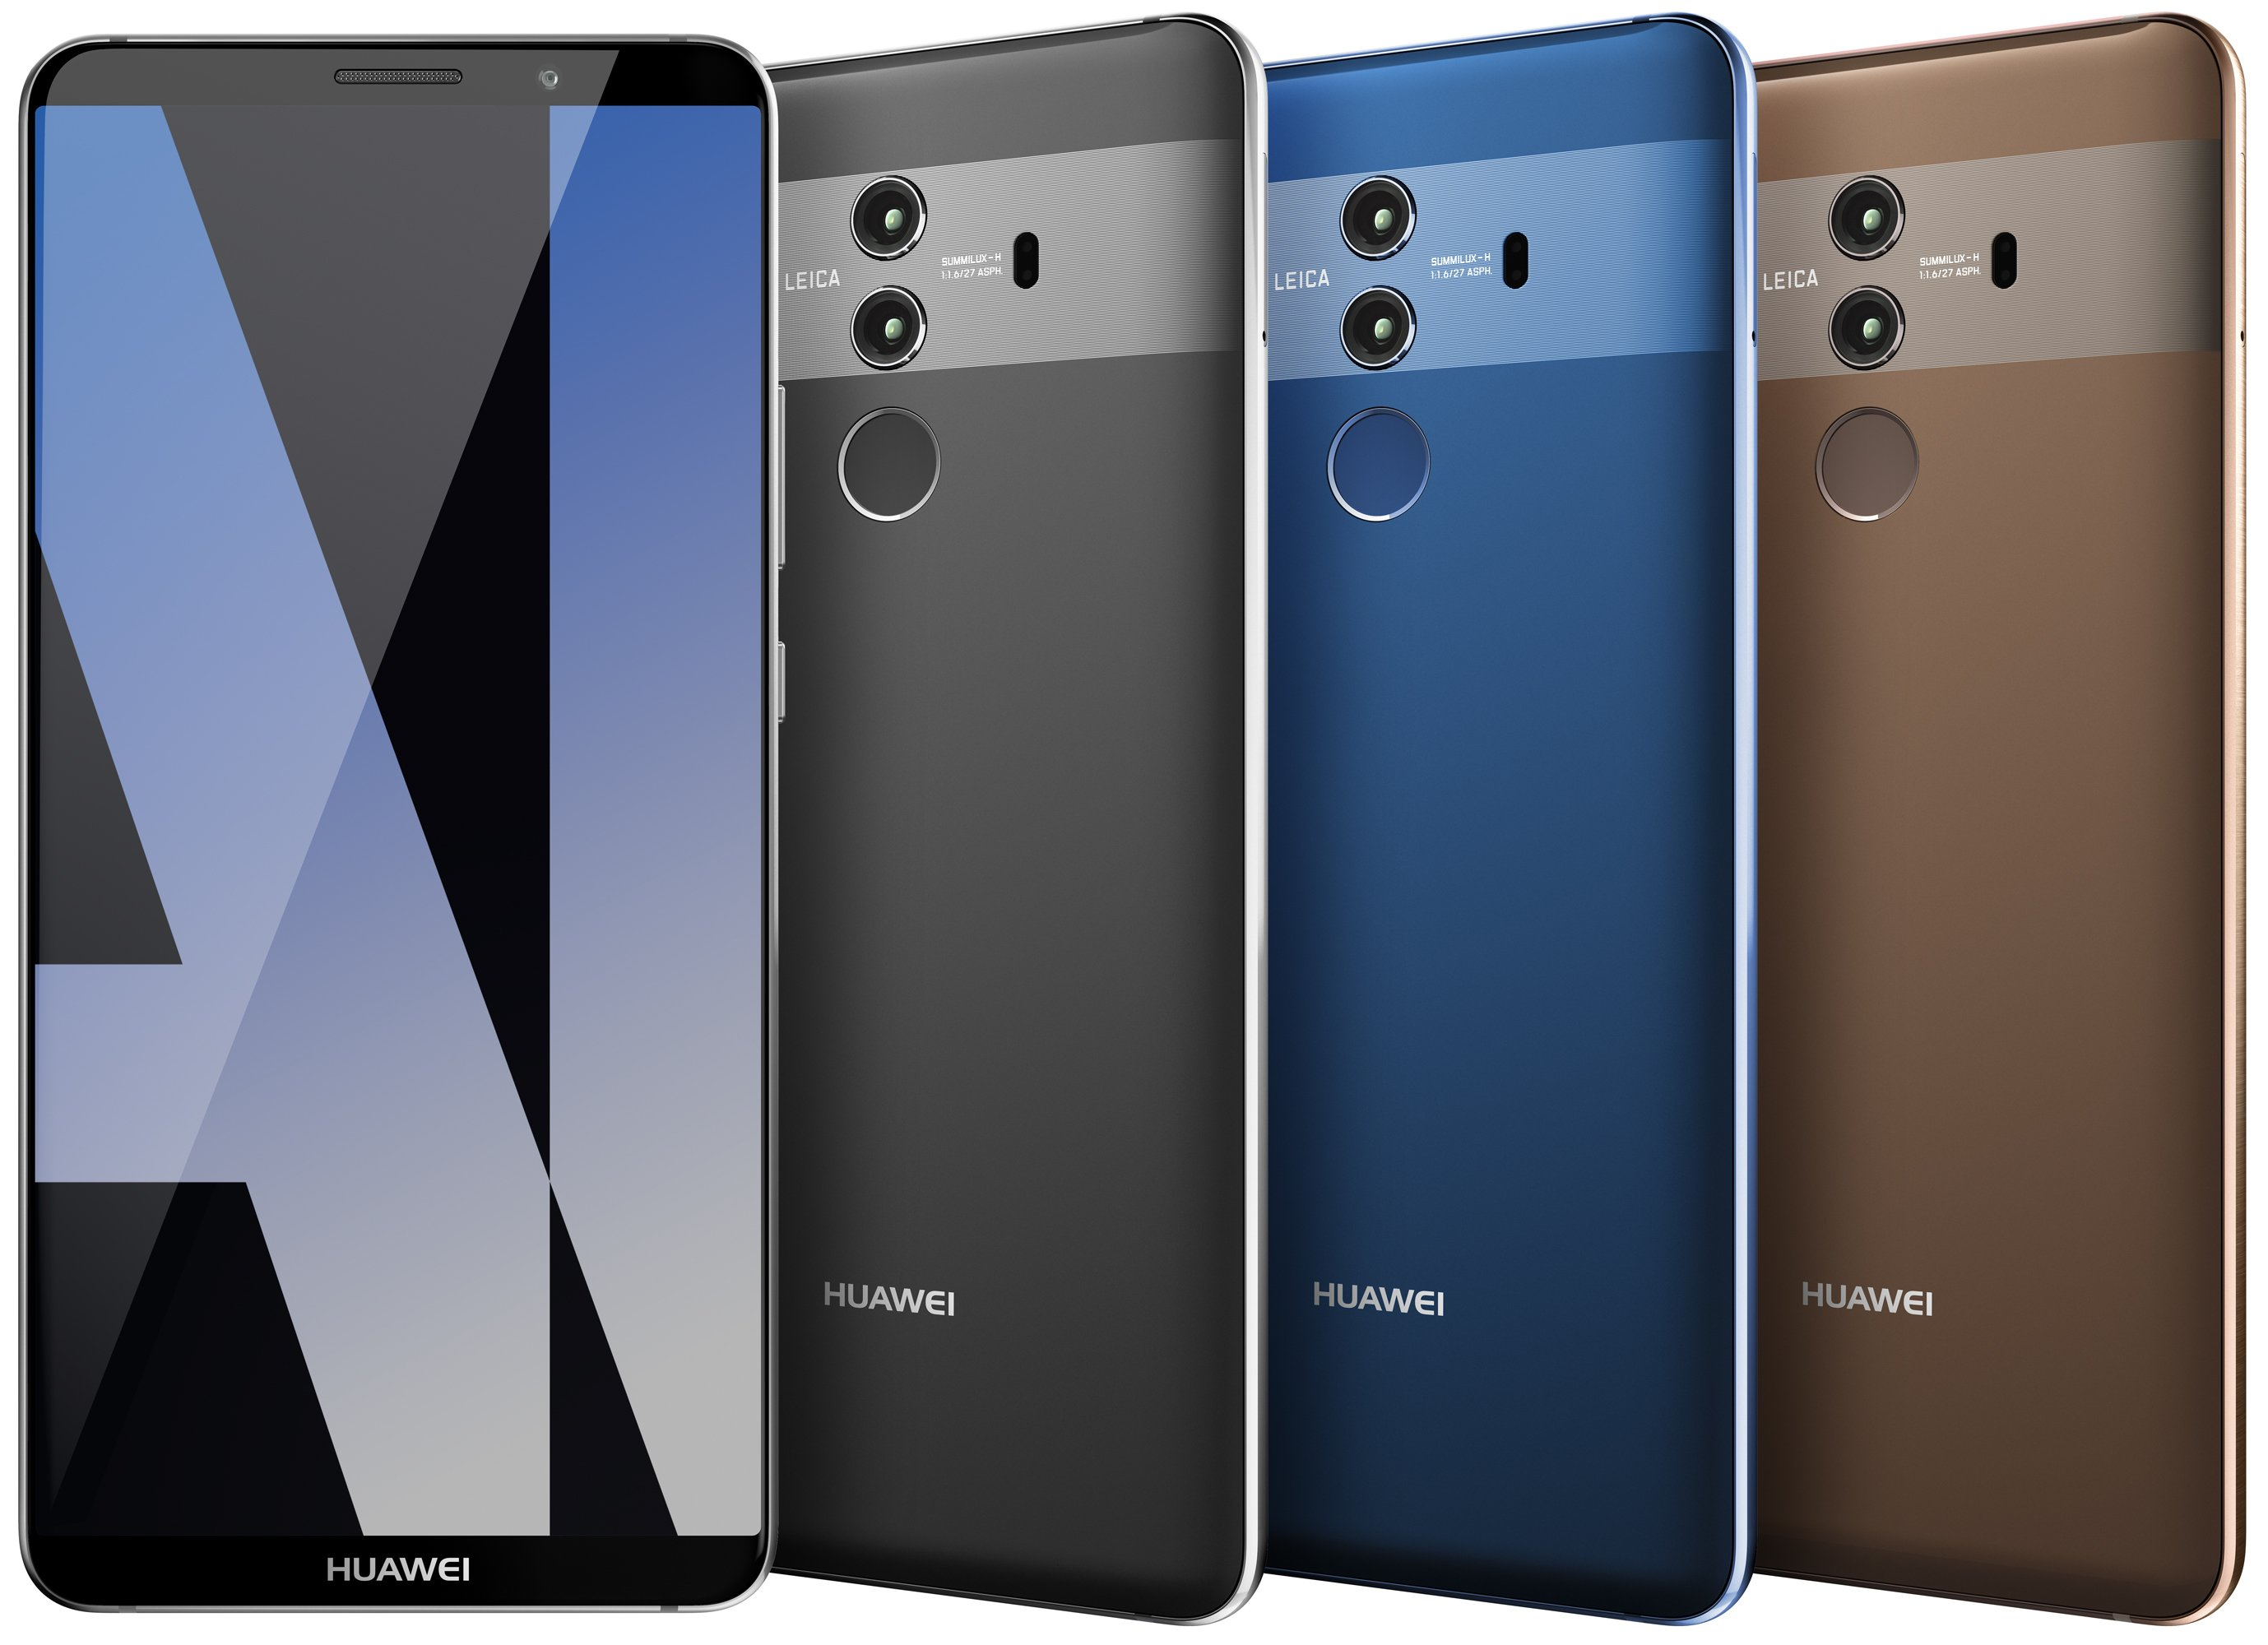 The Huawei Mate 10 and Mate 10 Pro will be sold at Microsoft